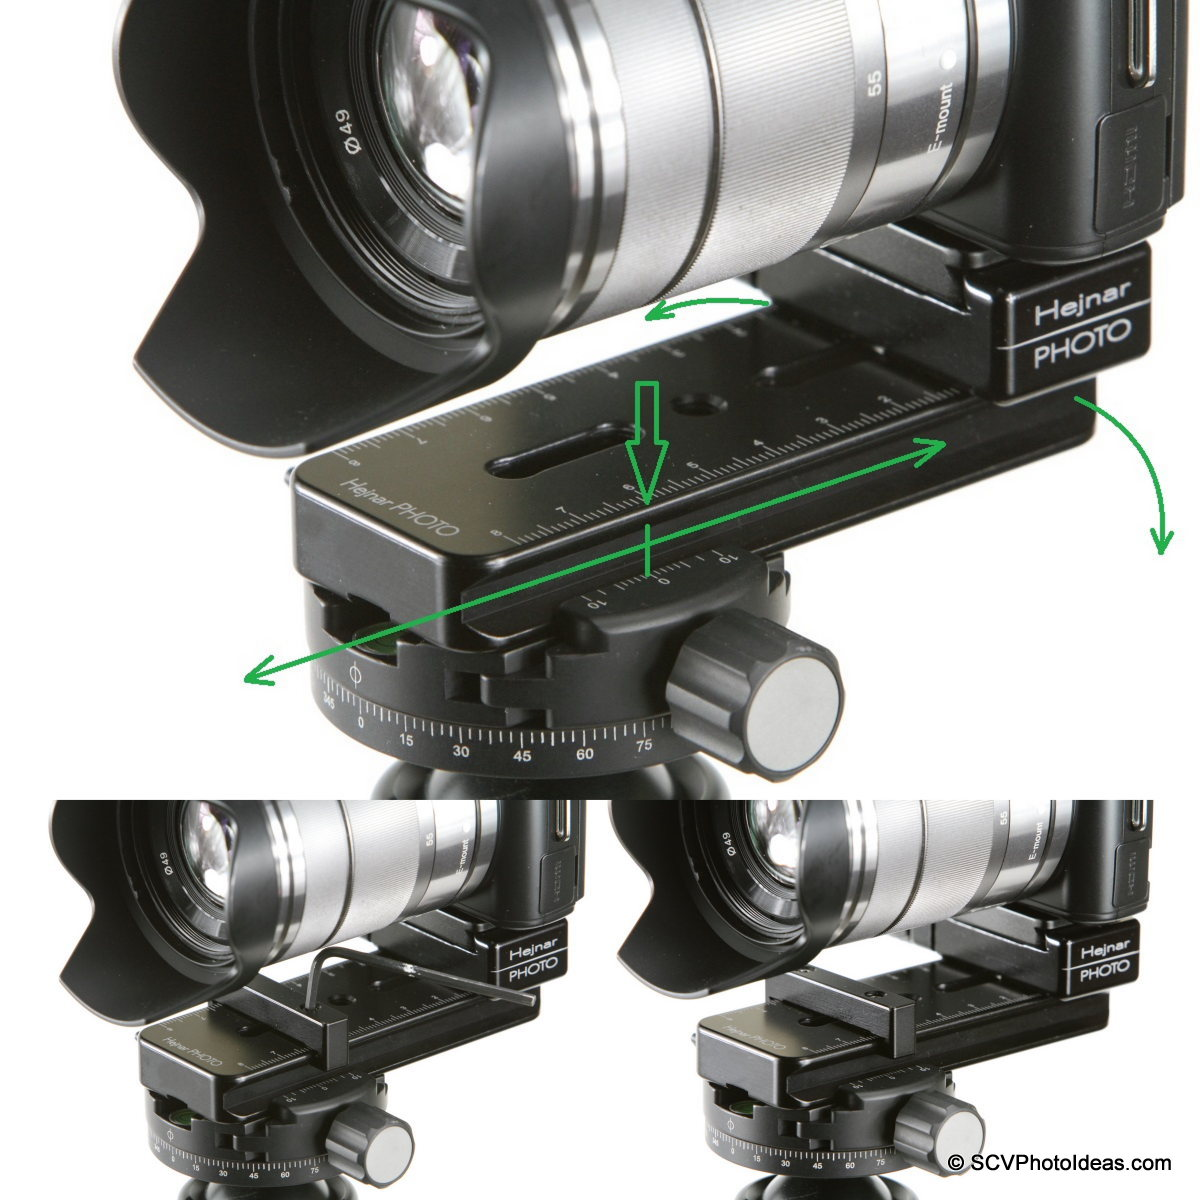 Sony NEX-C3 + Mini MR Pano Nodal rail adjustment sequence